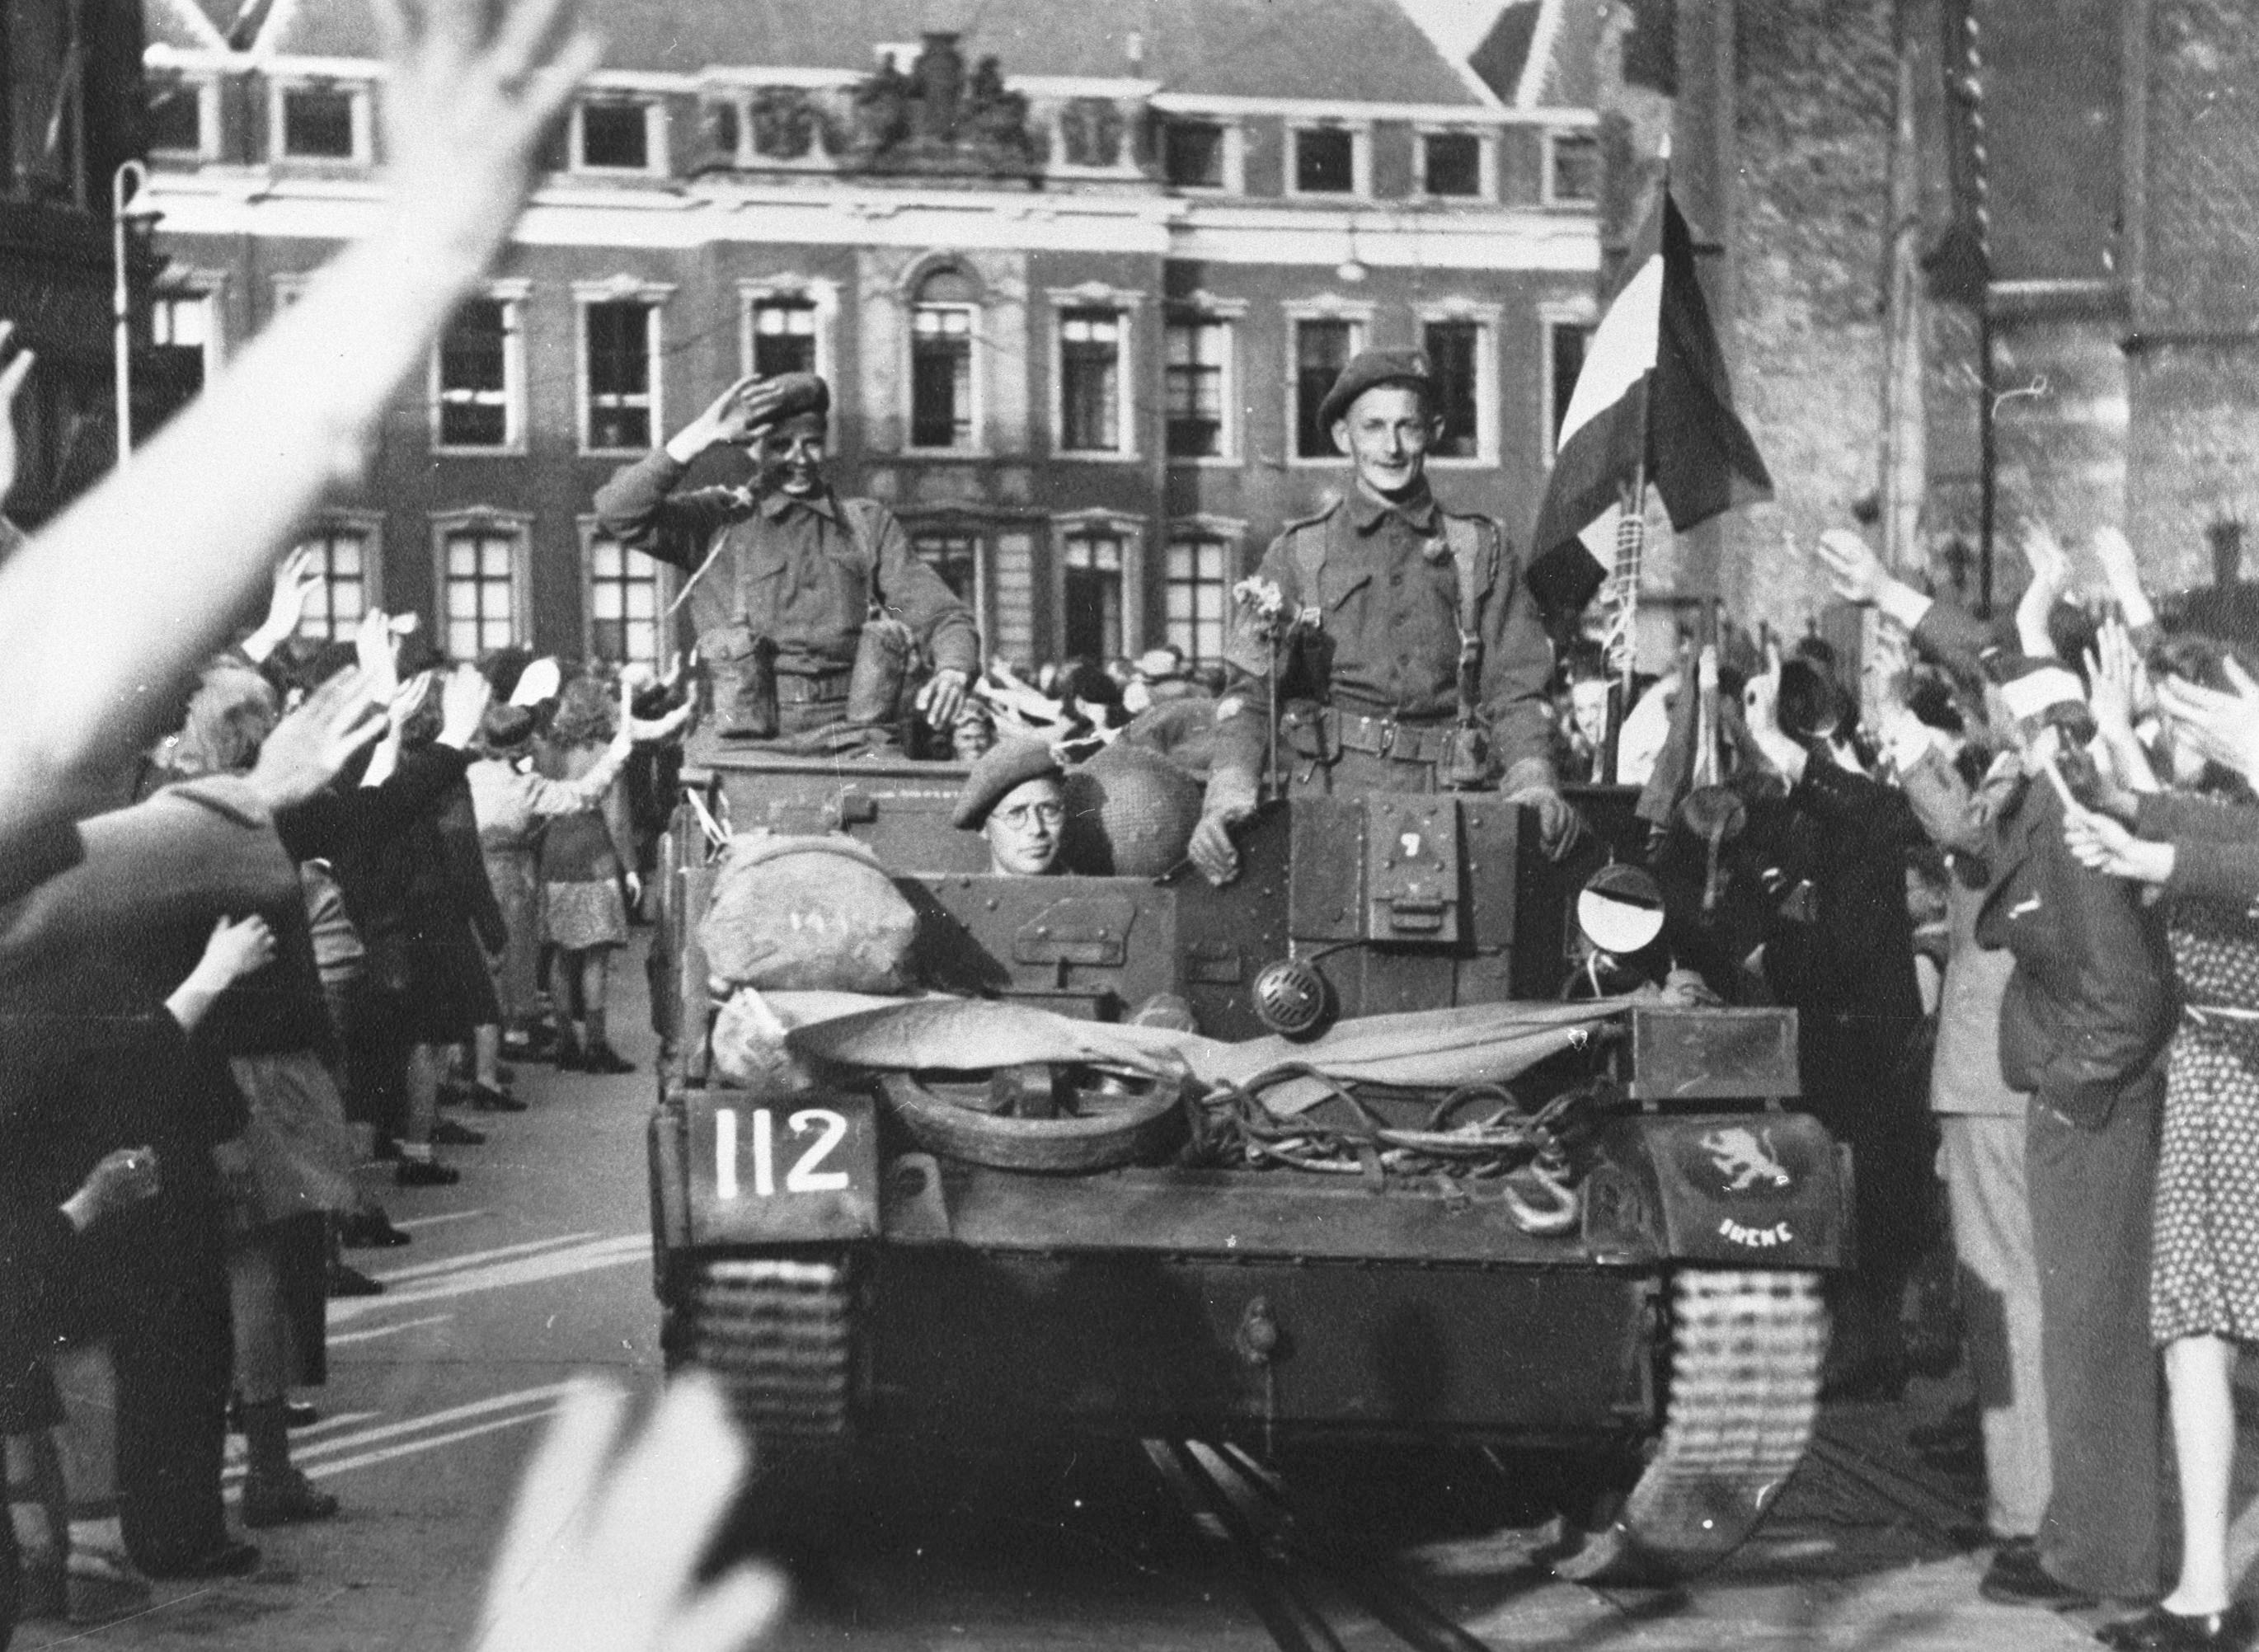 Liberation of Maastricht, Netherlands Google image from http://www.thecanadianencyclopedia.com/media/celebration-netherlands-1945-6072.jpg